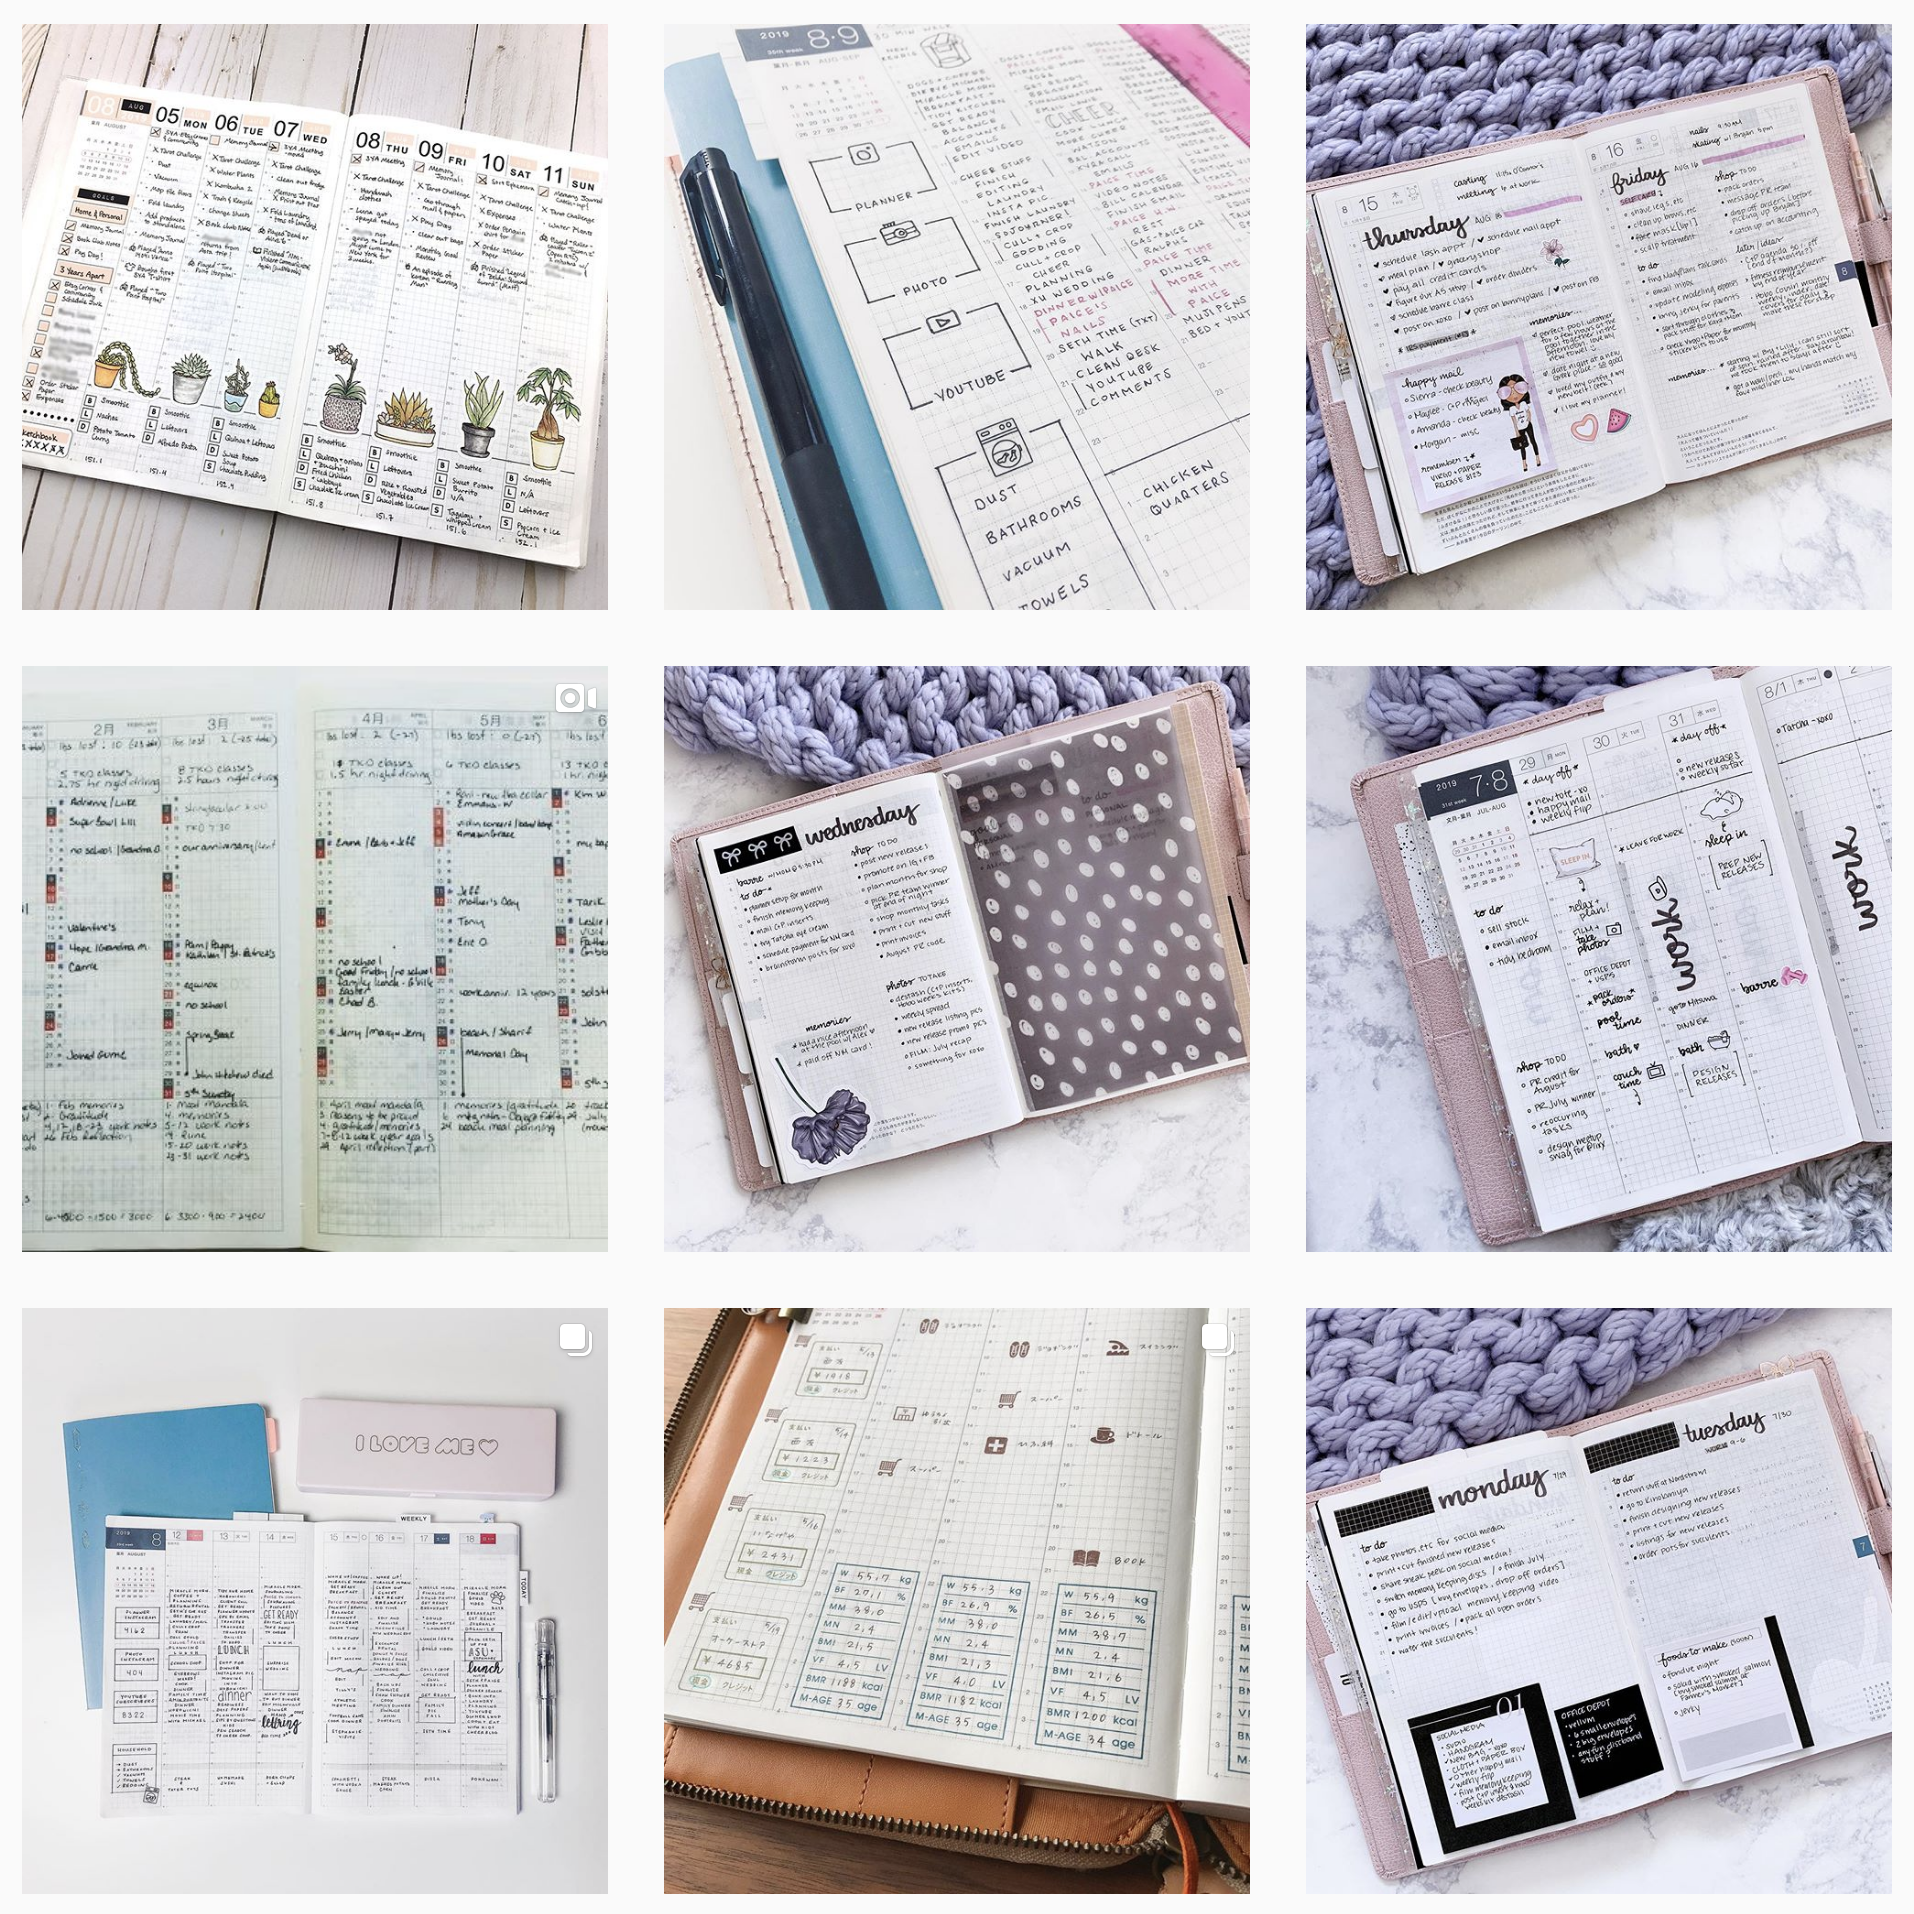 Hobonichi Planner photos from Instagram